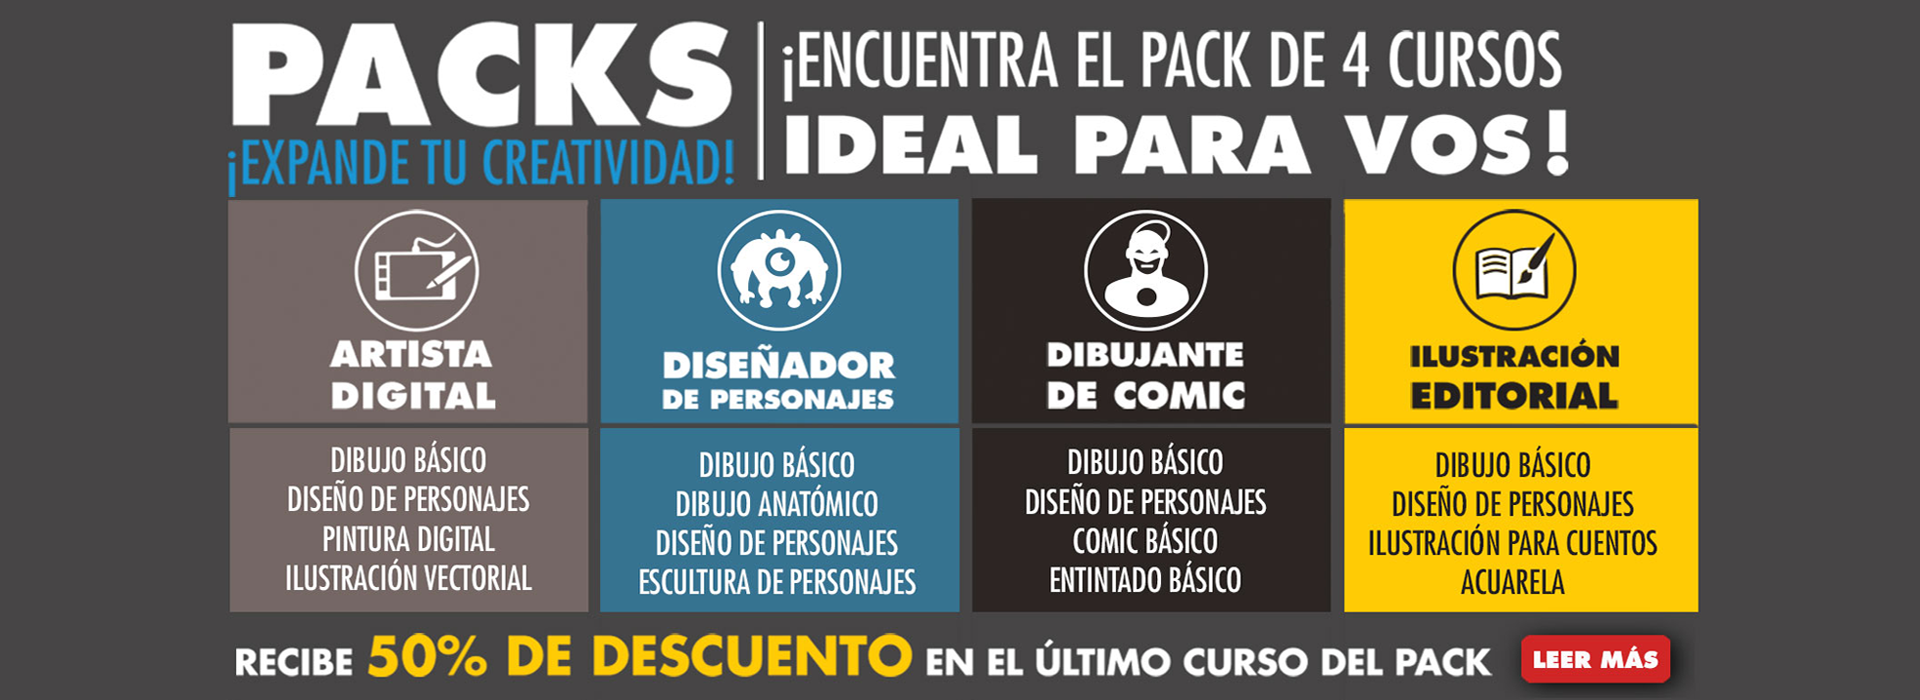 pack-web